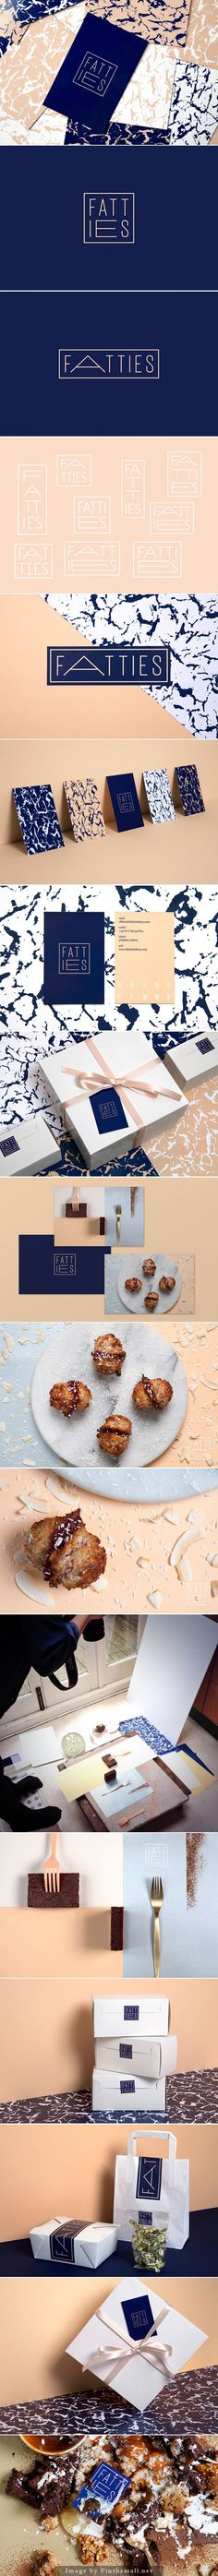 Fatties Bakery. Beautiful design, but not sure about the name though. #branding #identity #design (View more at www.aldenchong.com)